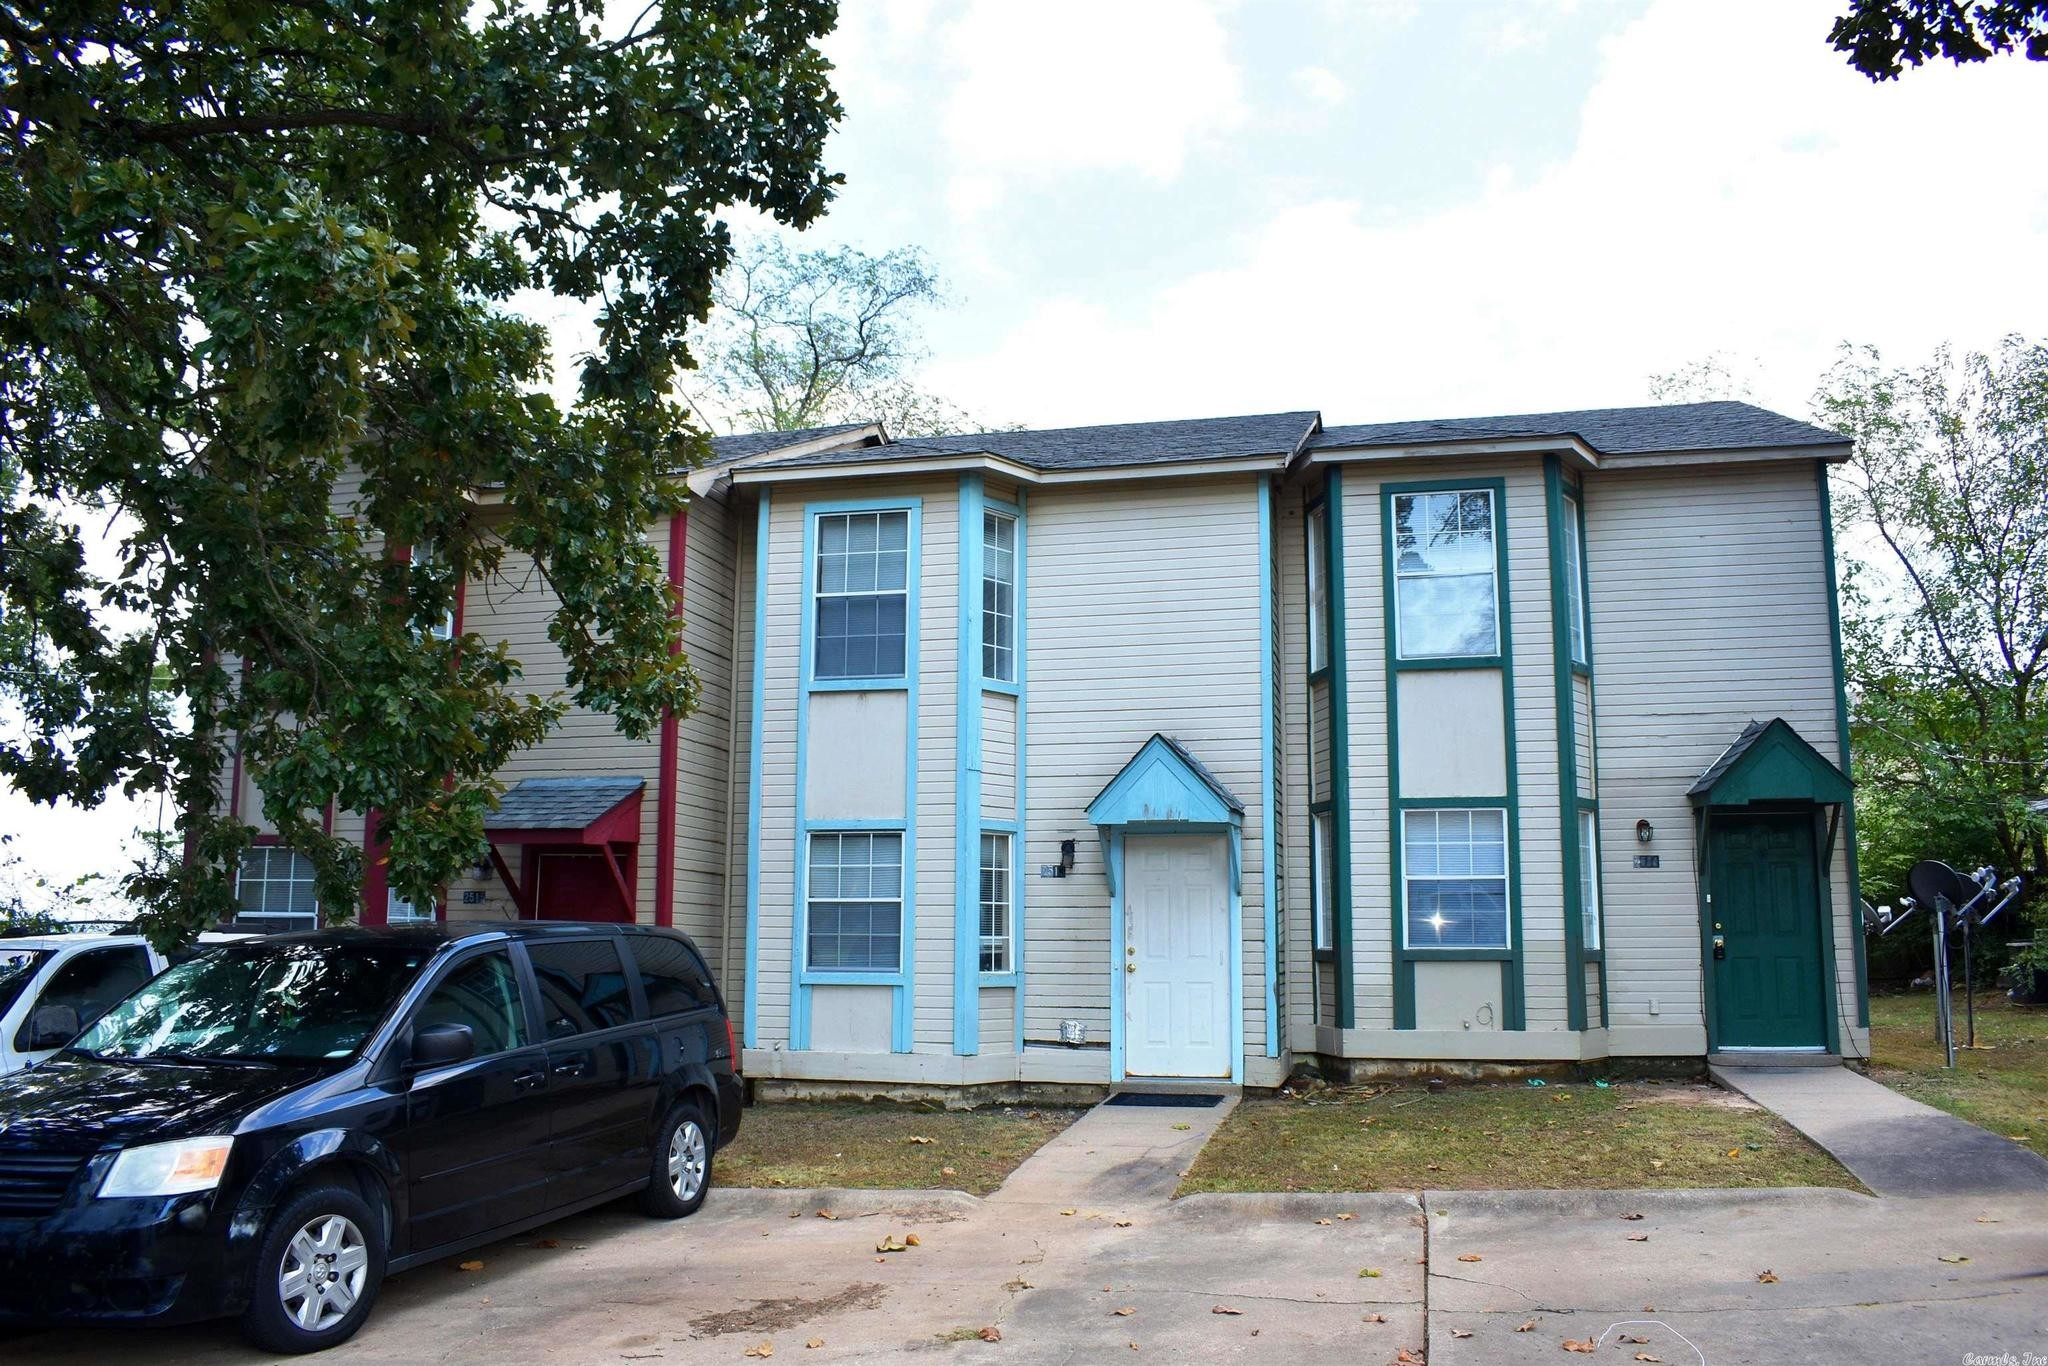 2-Story Multi-Family Home In North Little Rock